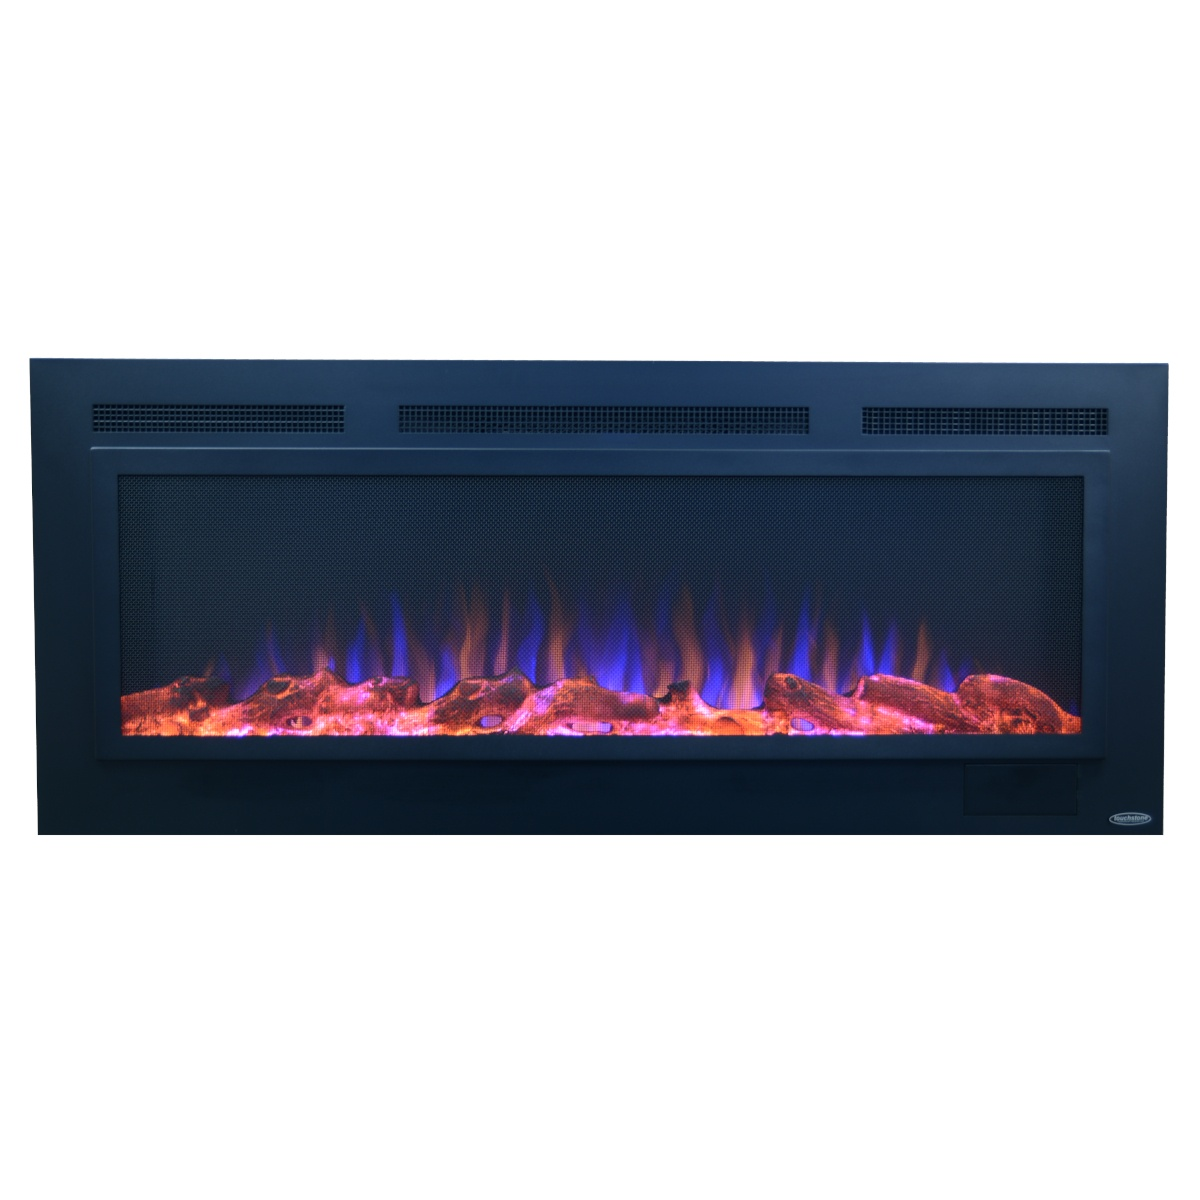 touchstone sideline 50 inch electric fireplace with steel front